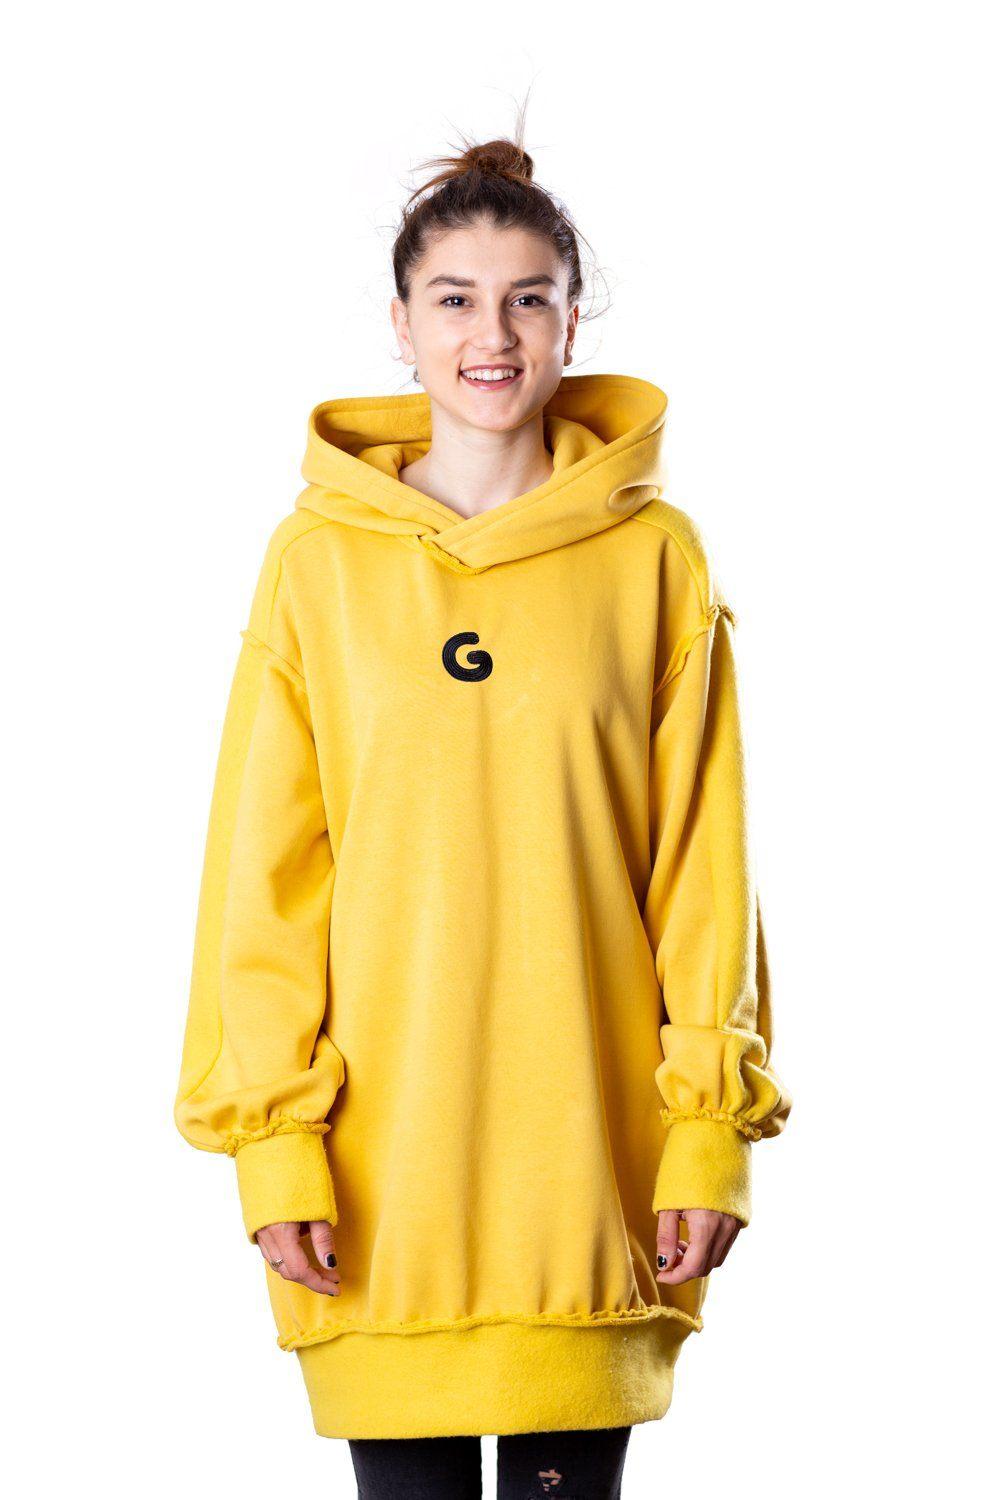 TheG Fresh Oversize Hoody Woman // yellow